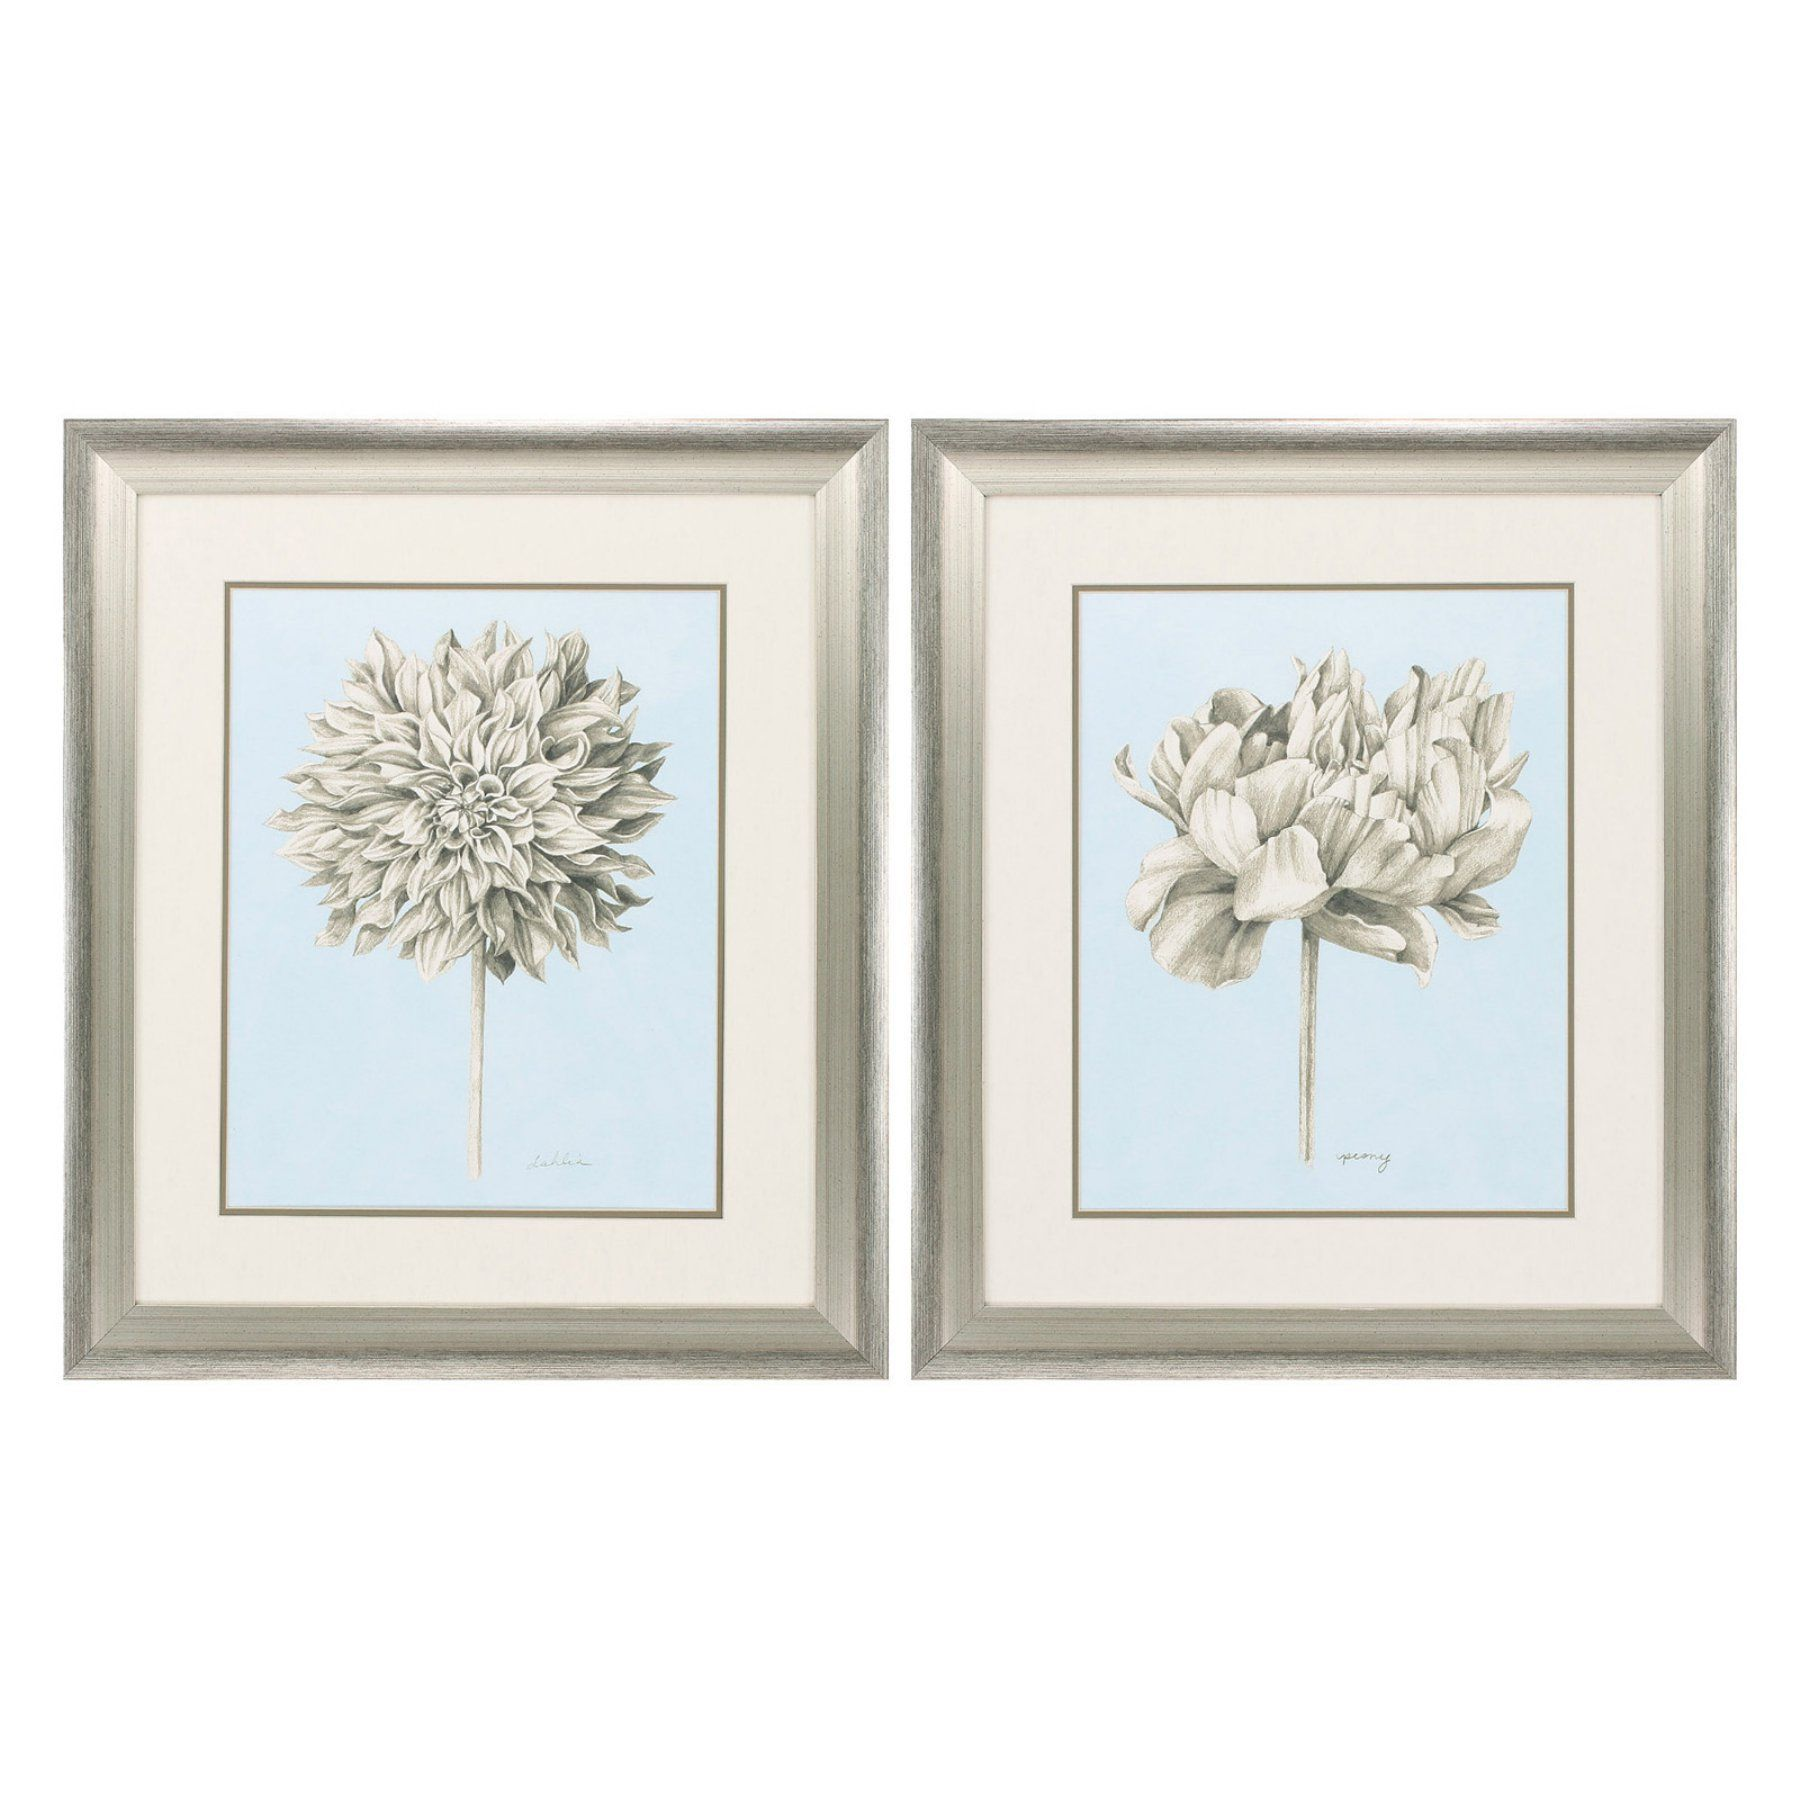 Propac Images Botanical Study Framed Painting Print - Set of 2 - 3828